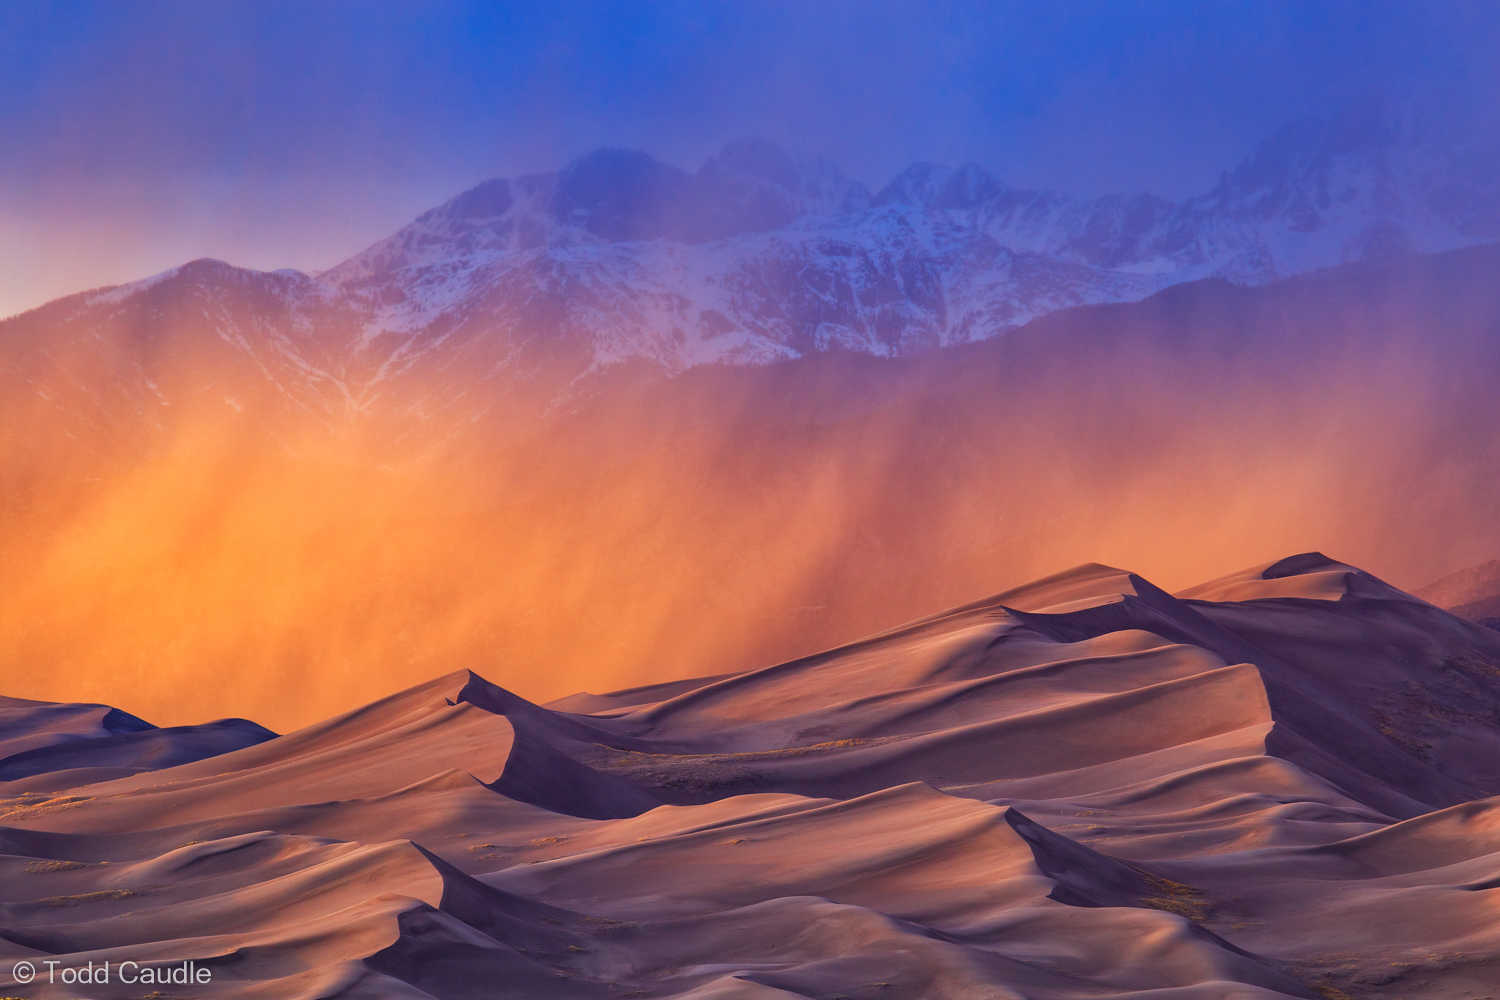 Sheets of rain fall right at sunset over the vast dune fields of Great Sand Dunes National Park, creating dramatic backlighting...